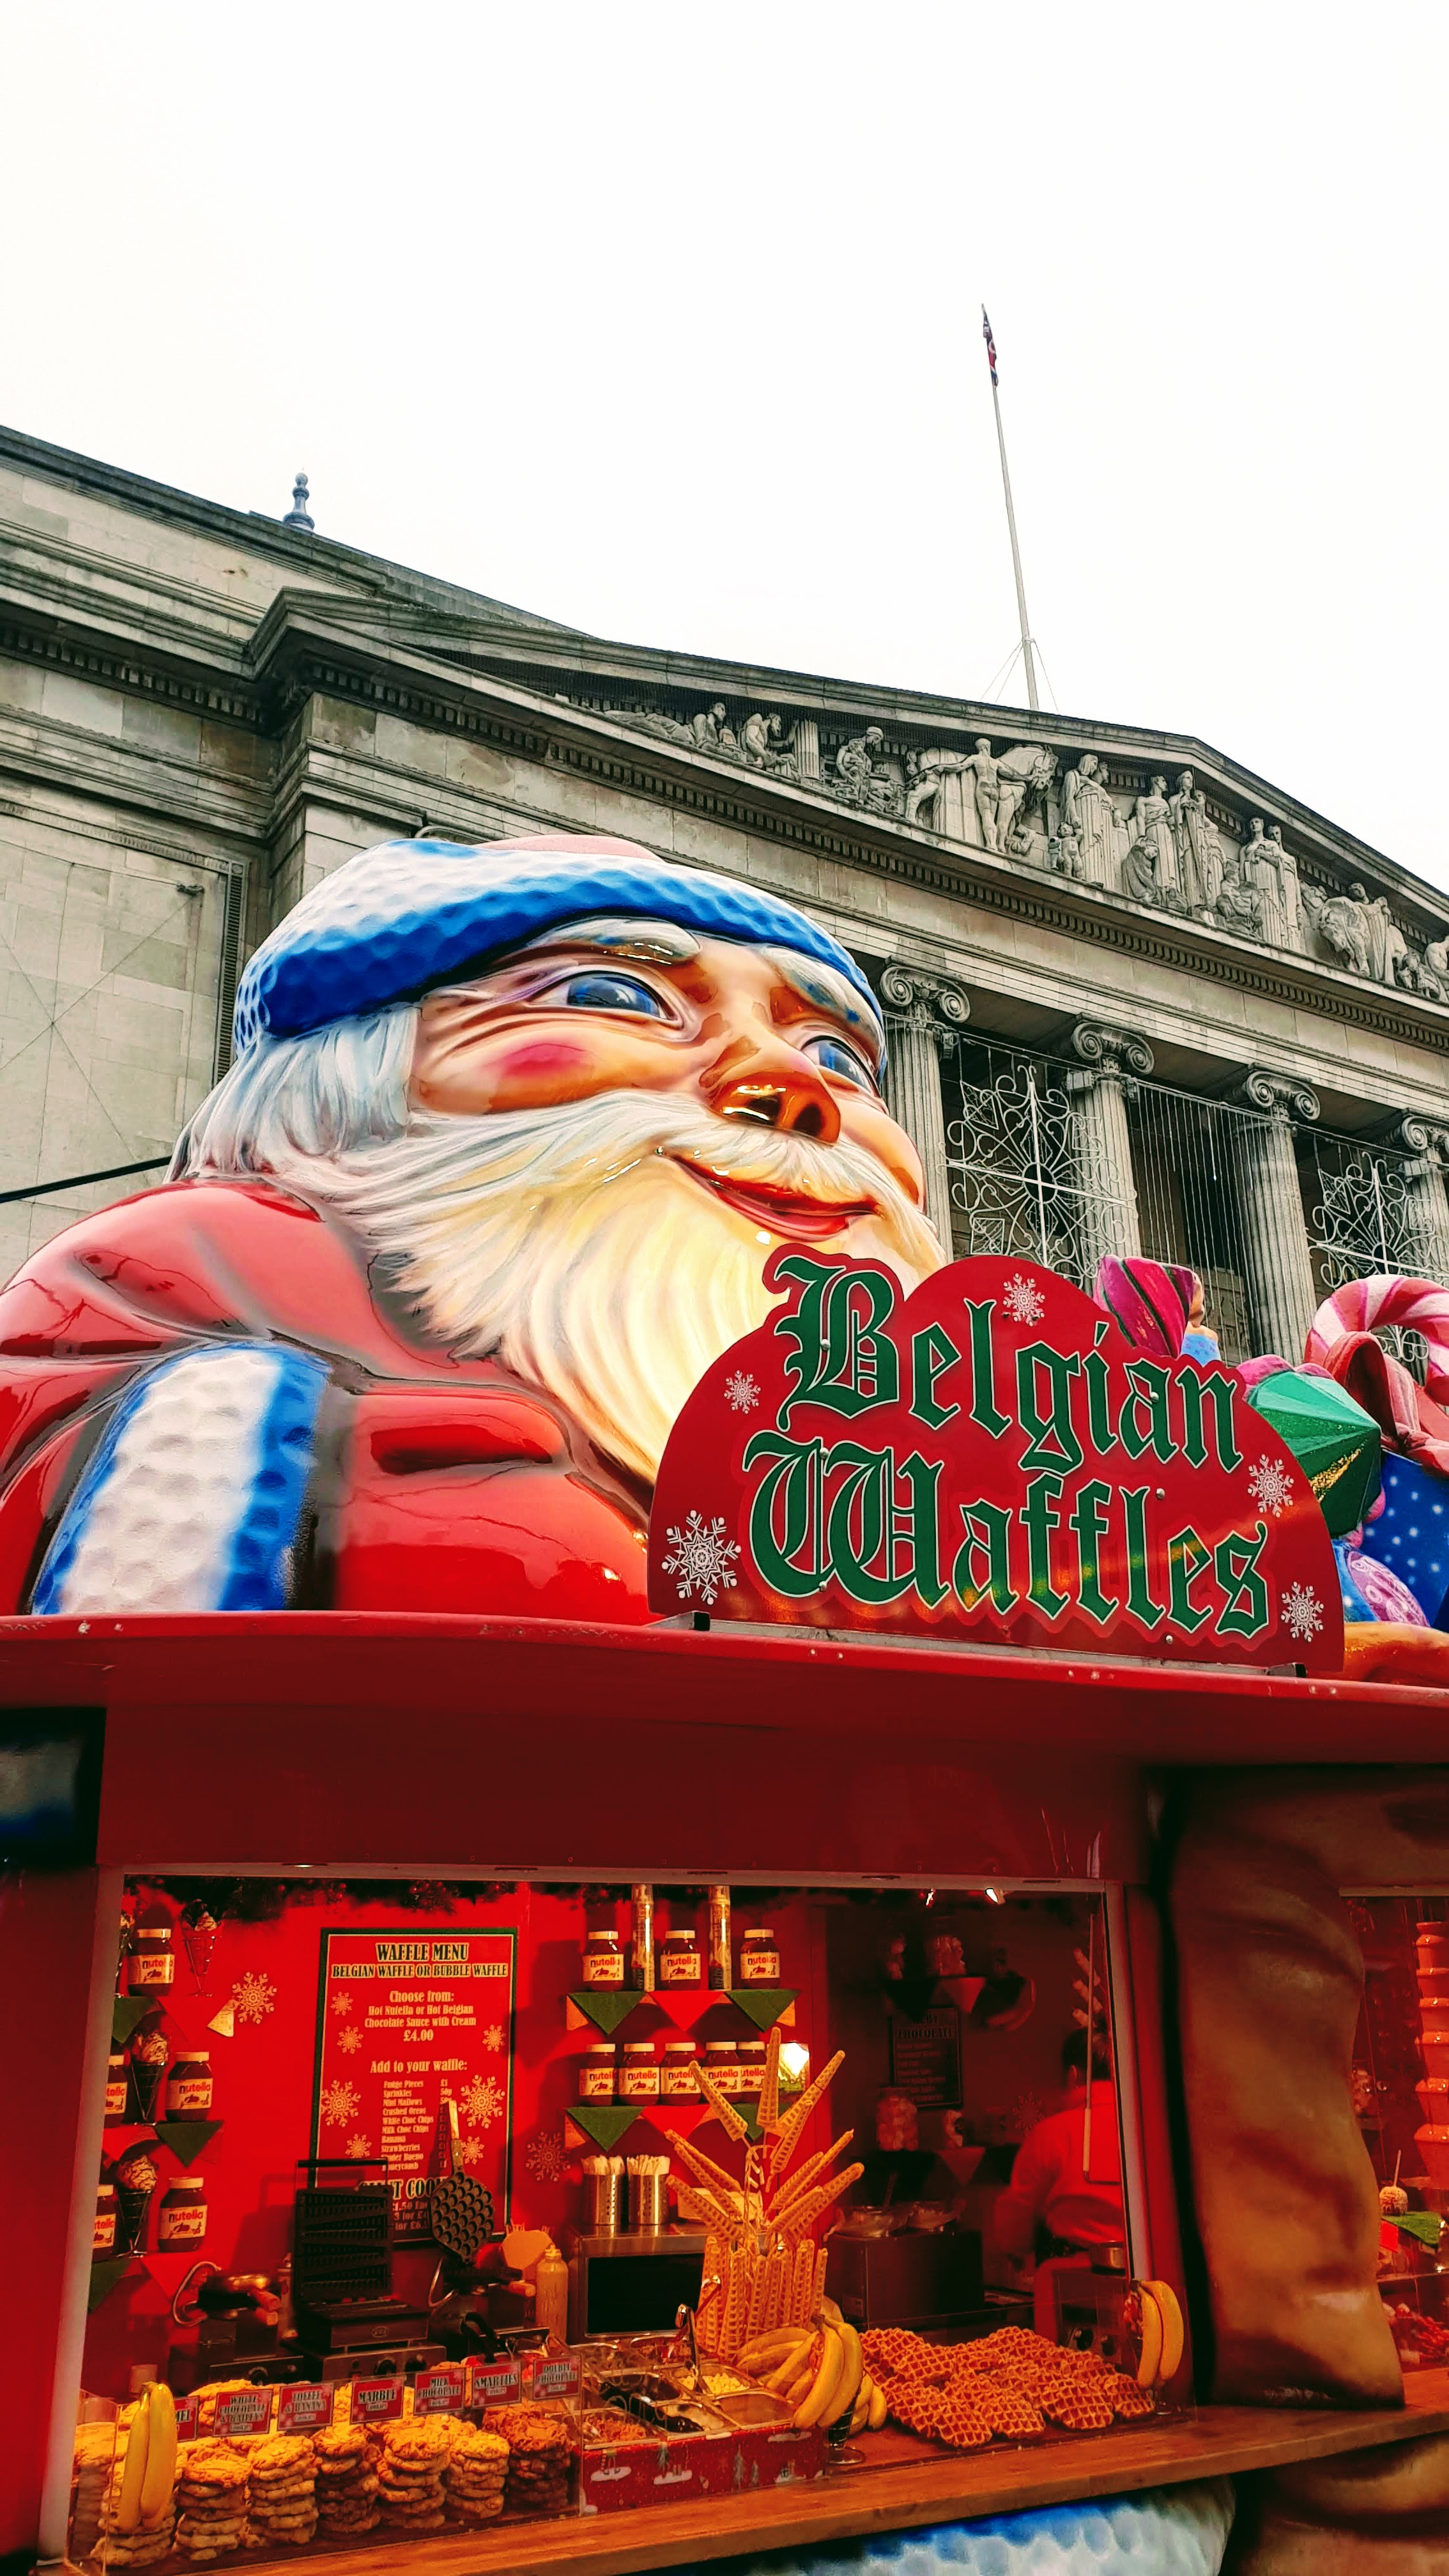 Nottingham Christmas Market Over The Years